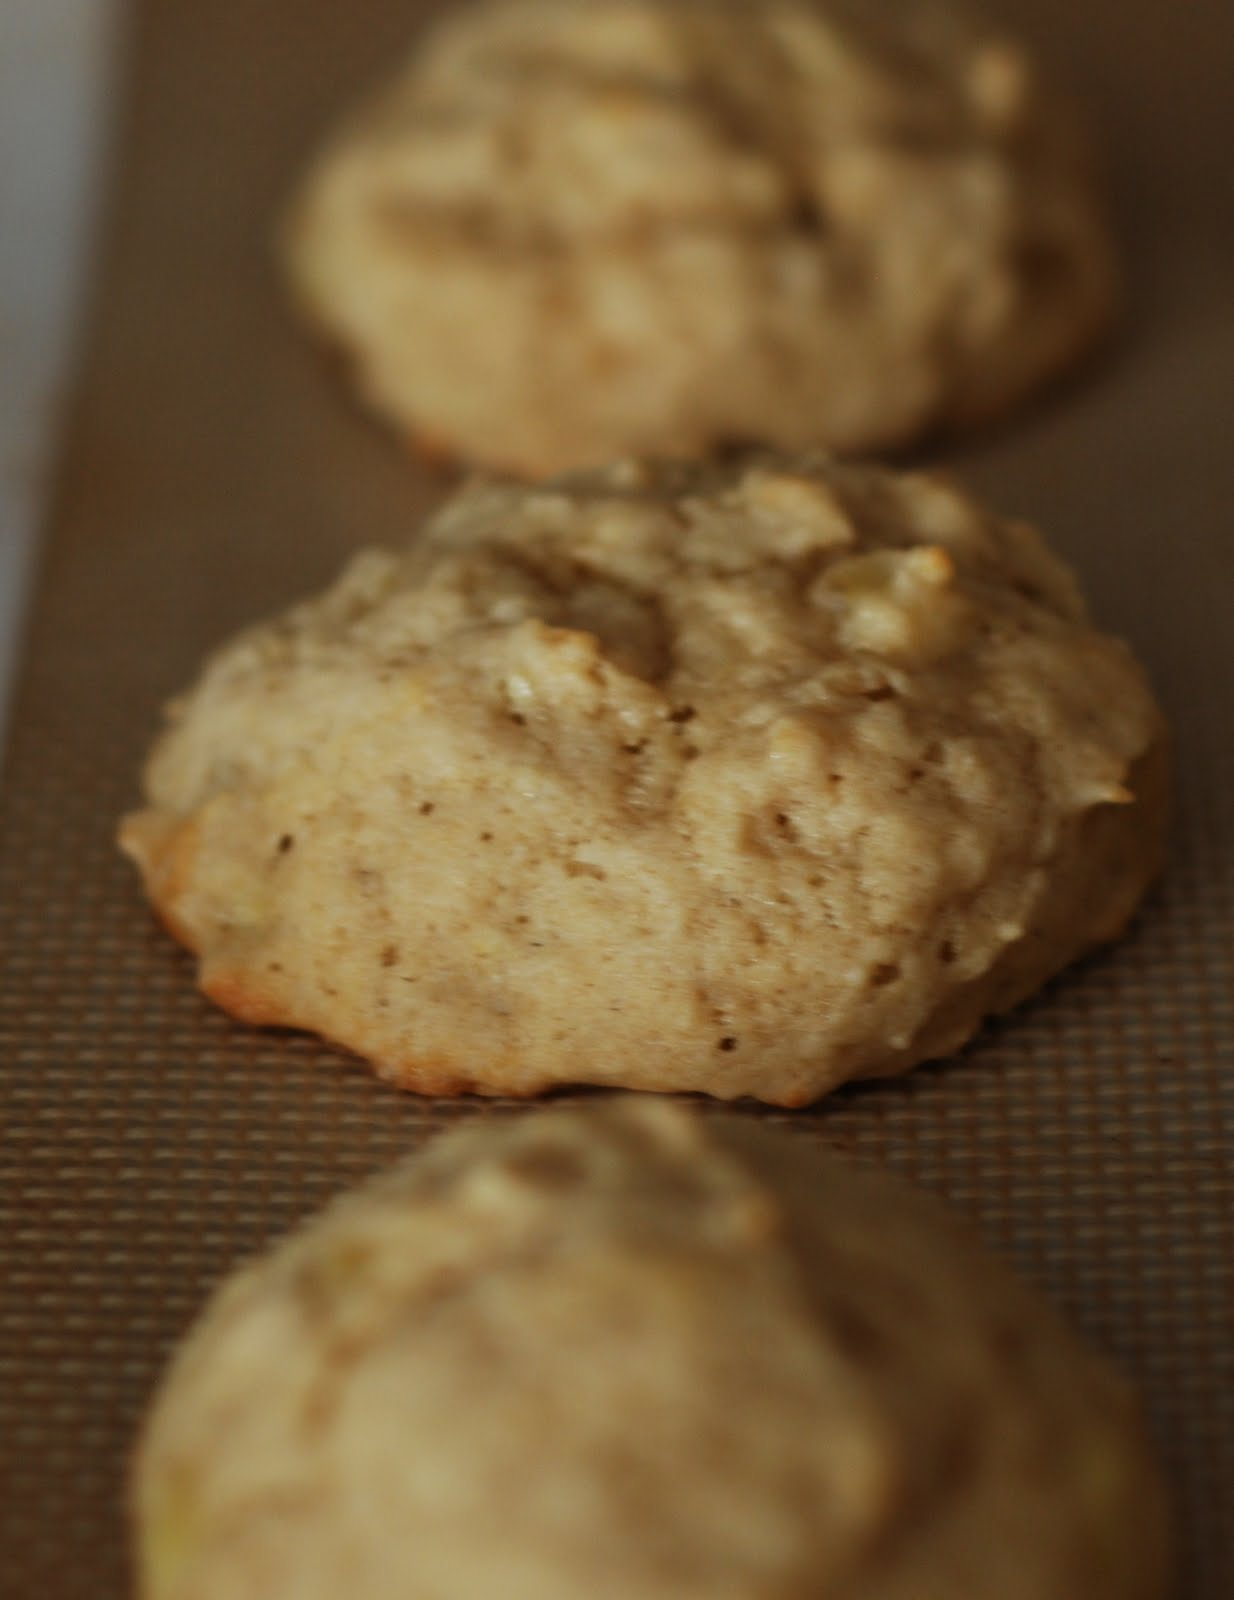 Dizzy Girl Bakes: Frosted Banana Cookies